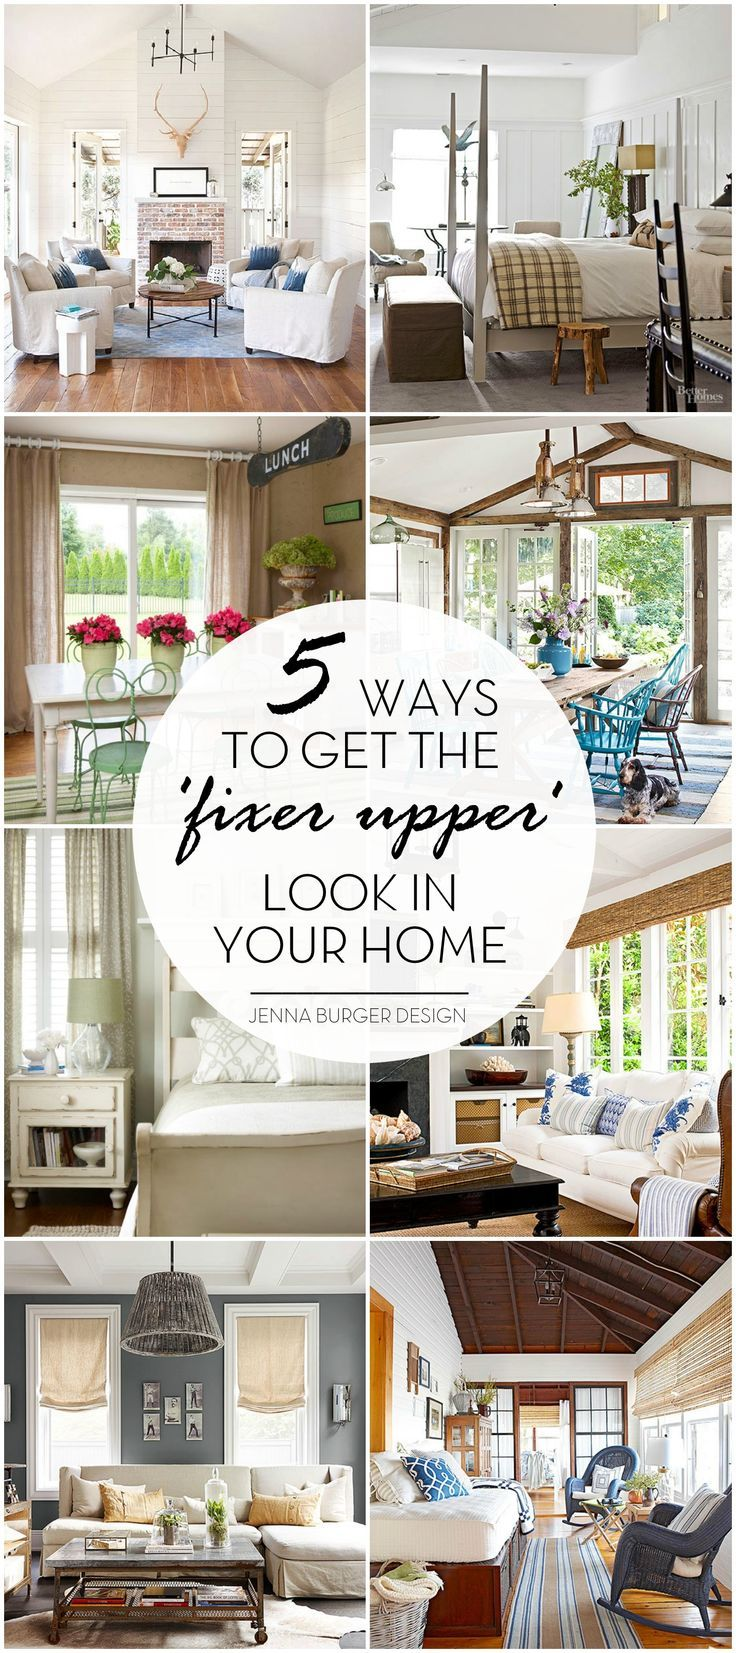 Ideas : Who doesn't love the HGTV show Fixer Upper with Joanna + Chip Gaines?! Check out these 5 Ways to Get the 'FIXER UPPER' style in your home. Inspiration round up by www.JennaBurger.com